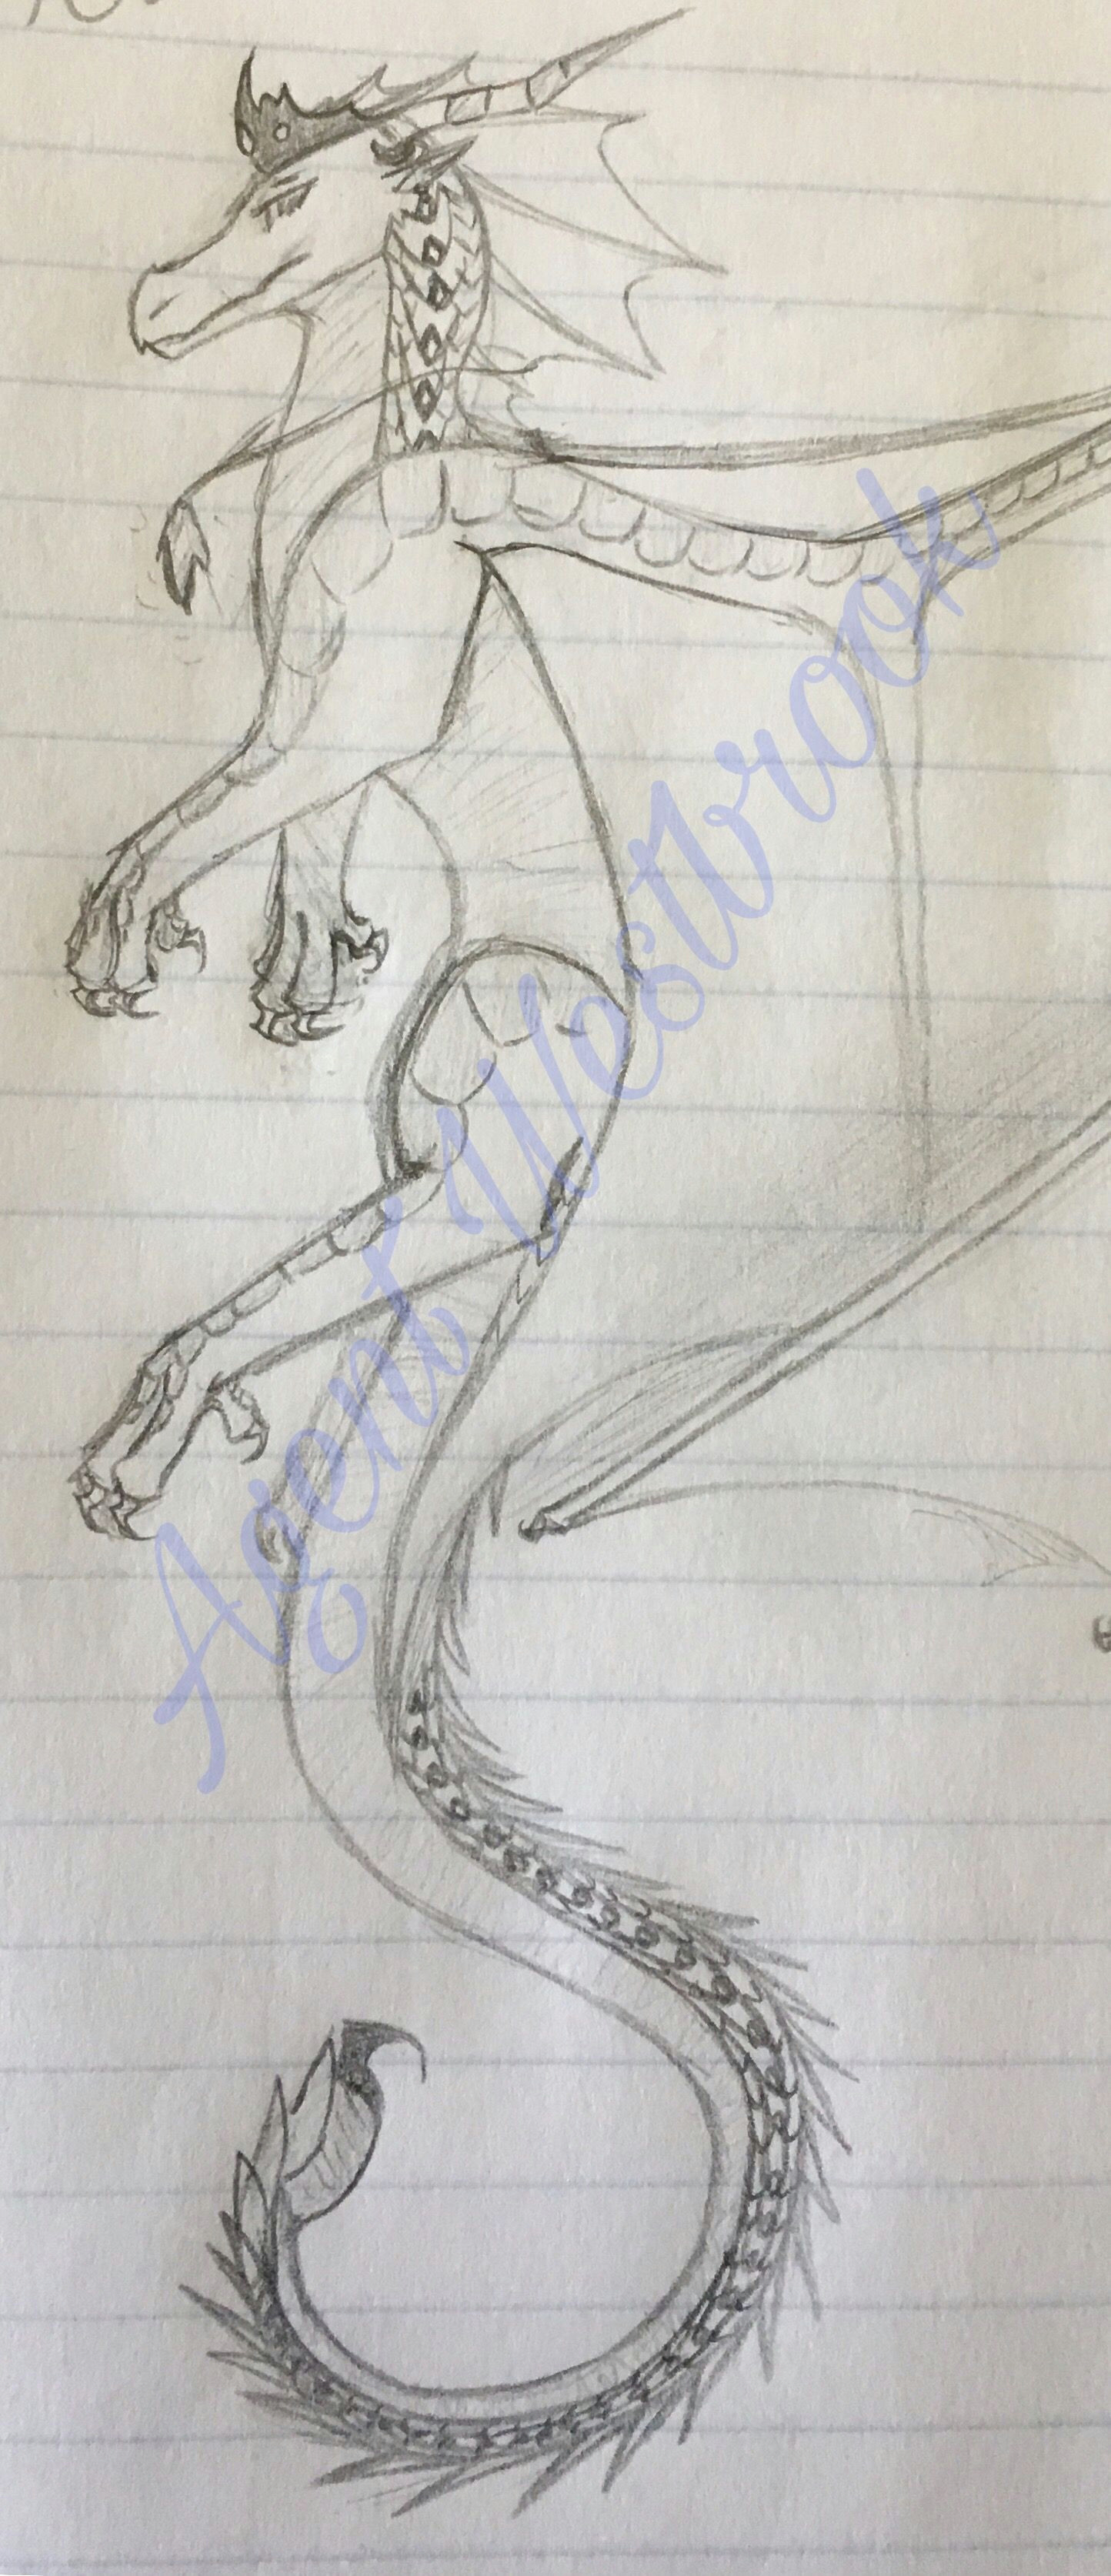 Drawings Of Dragons Full Body Queen Supernova Of the Spacewings for the Drawing Contest I M